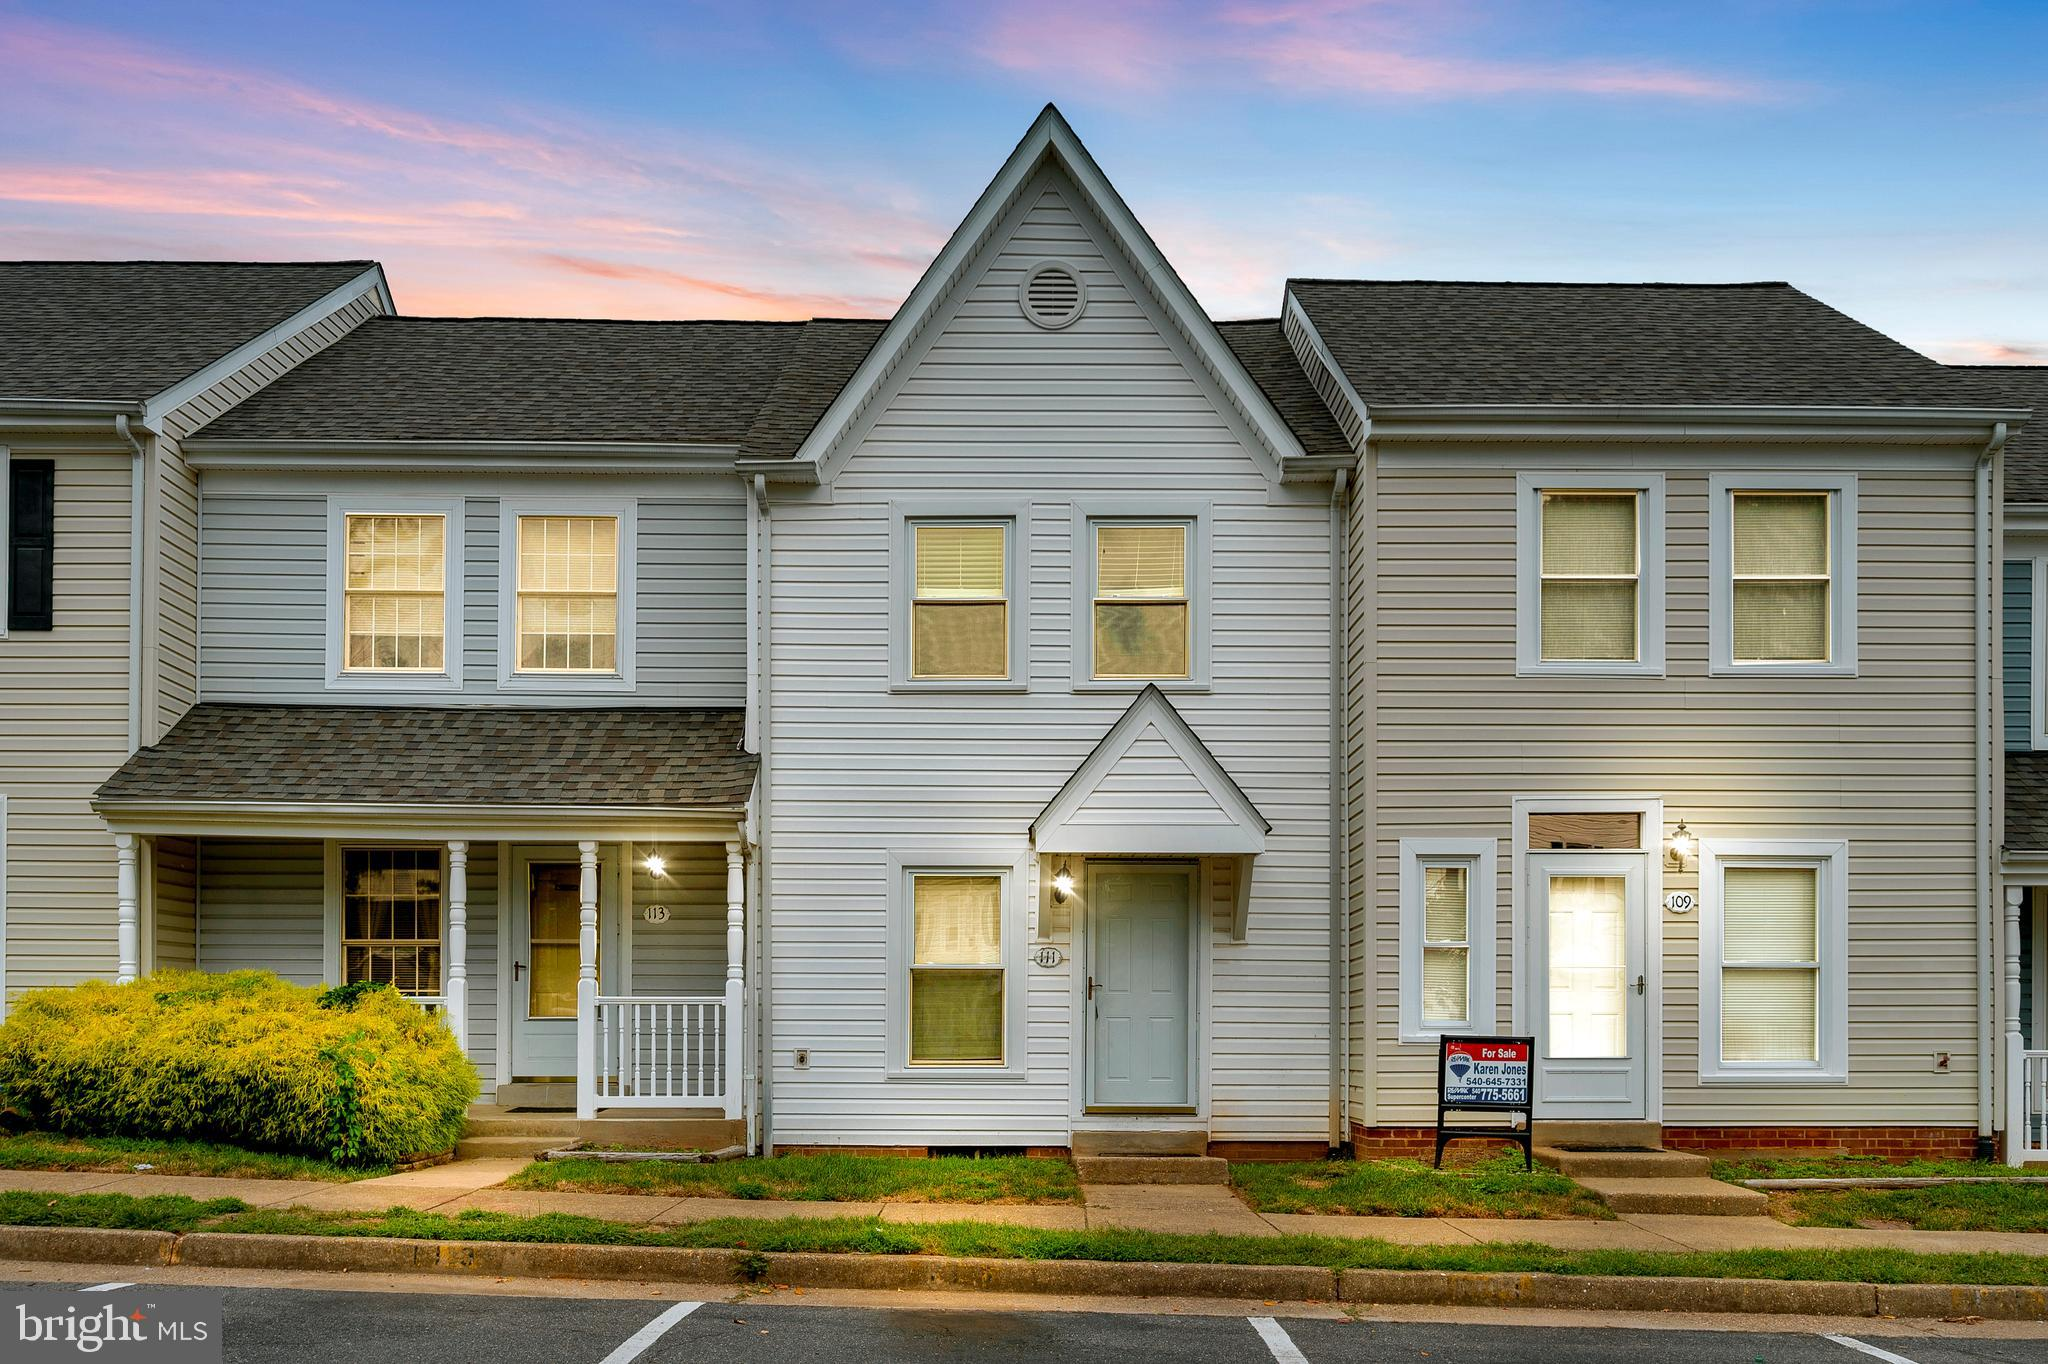 Very cozy 2 bedrooms 1.5 bath townhome. Enjoy the fully finished basement for entertaining or great for an office or home recreation. Fully enclosed rear year. Home offers washer and dryer and great location. Convenient to Quantico, Commuter Lots, VRE, I95, Restaurants, Shopping, Schools and so much more.